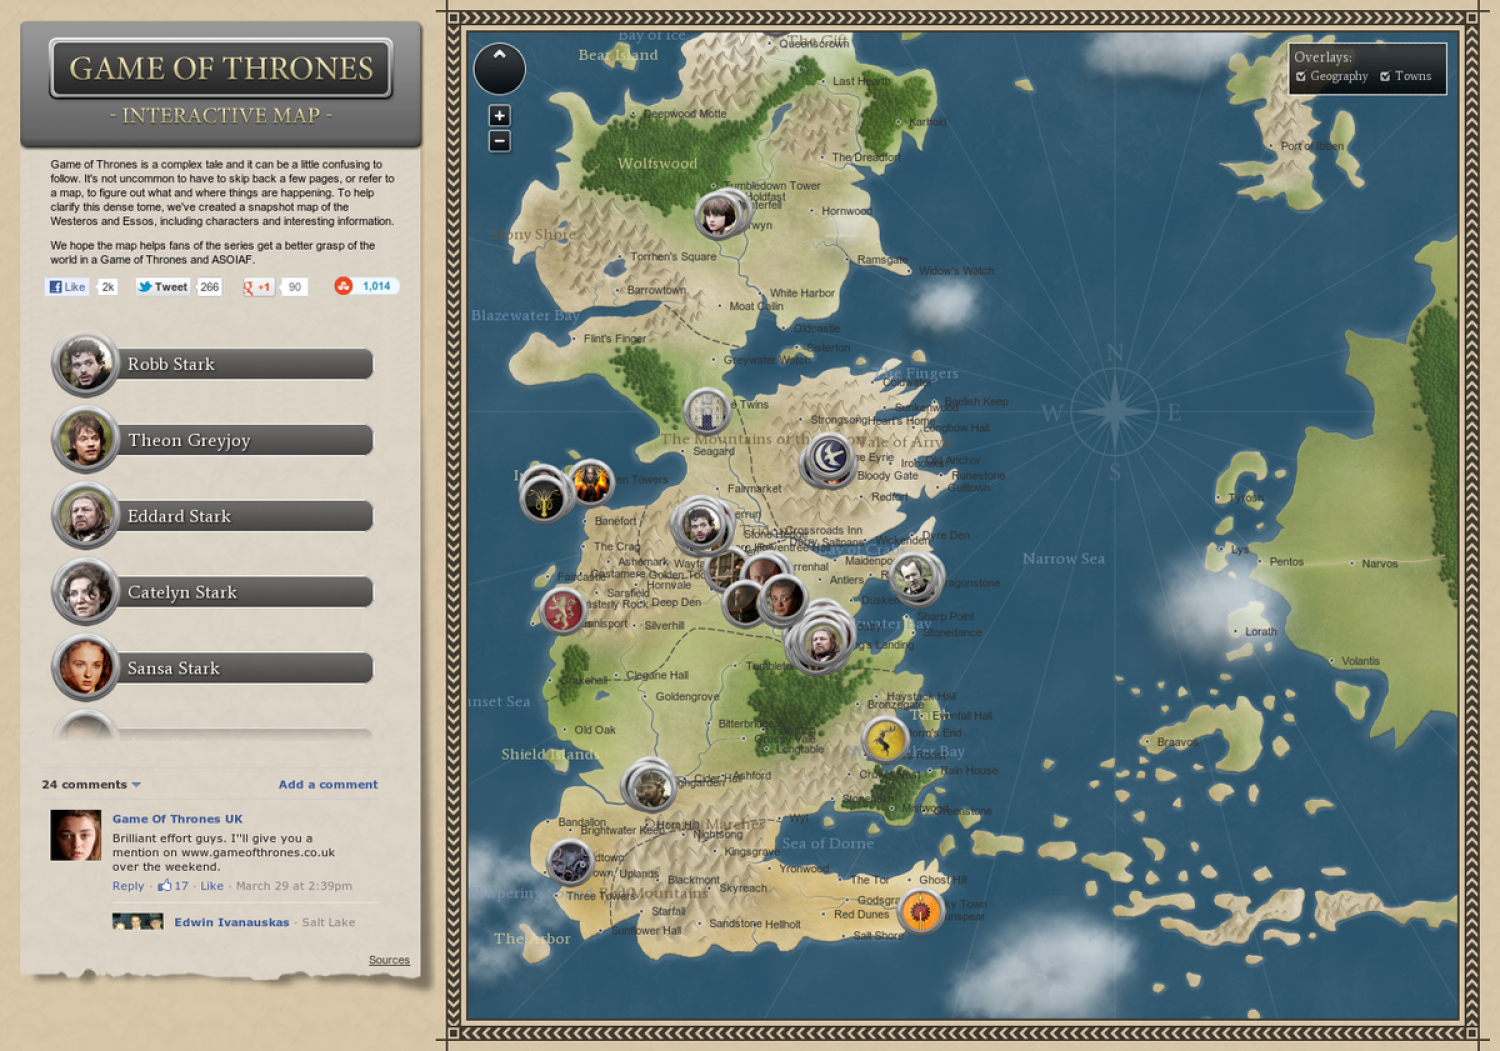 Game of thrones interactive map visual game of thrones interactive map infographic gumiabroncs Images